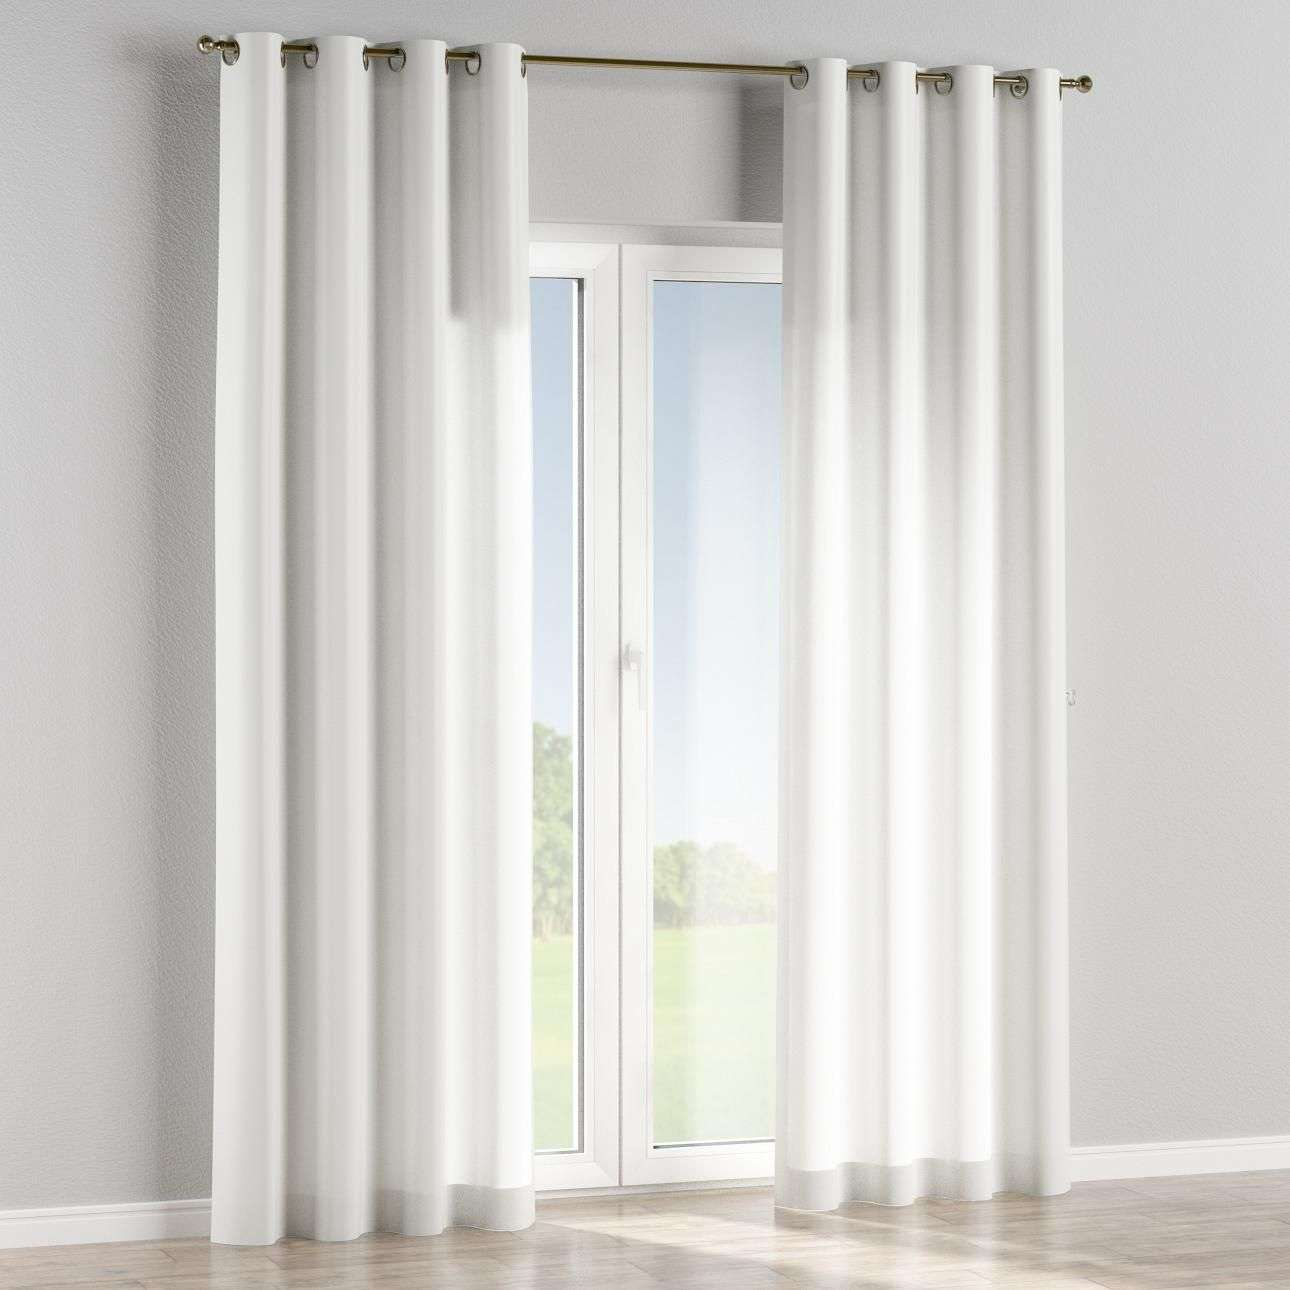 Eyelet lined curtains in collection Amelie , fabric: 136-25